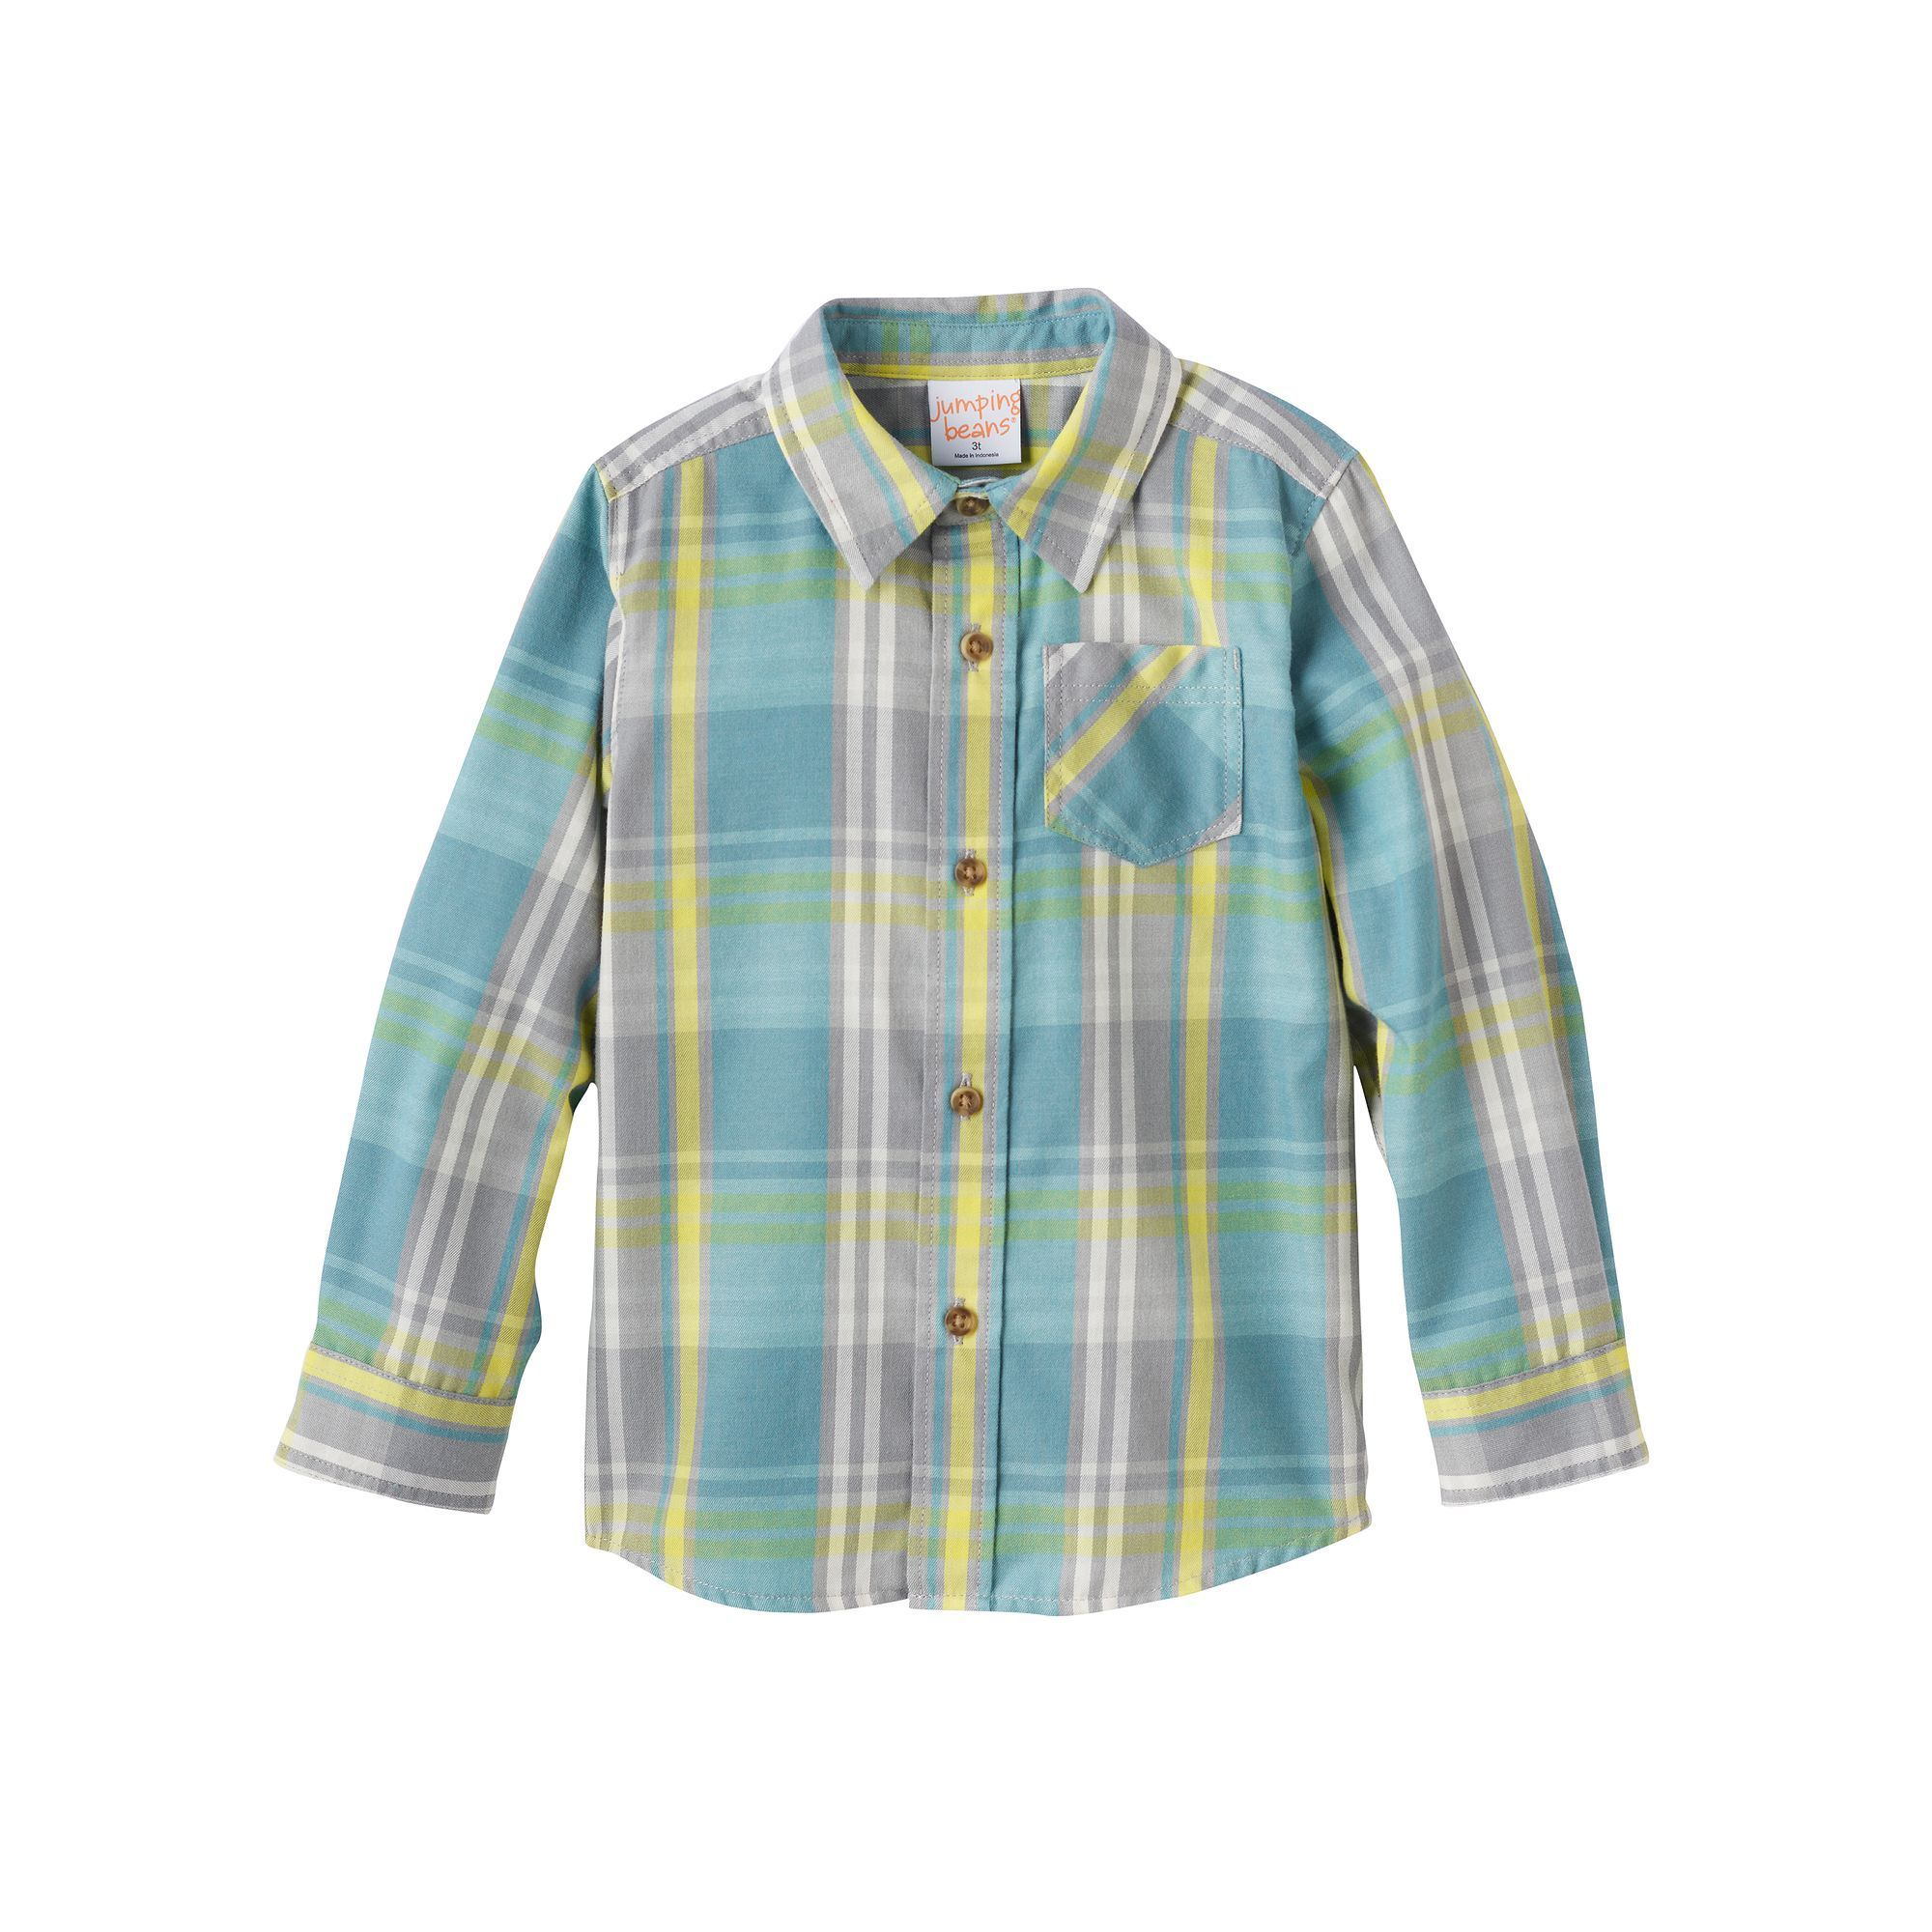 Flannel shirts at kohl's  Jumping Beans Baby Boy Jumping Beans Plaid Flannel Long Sleeve